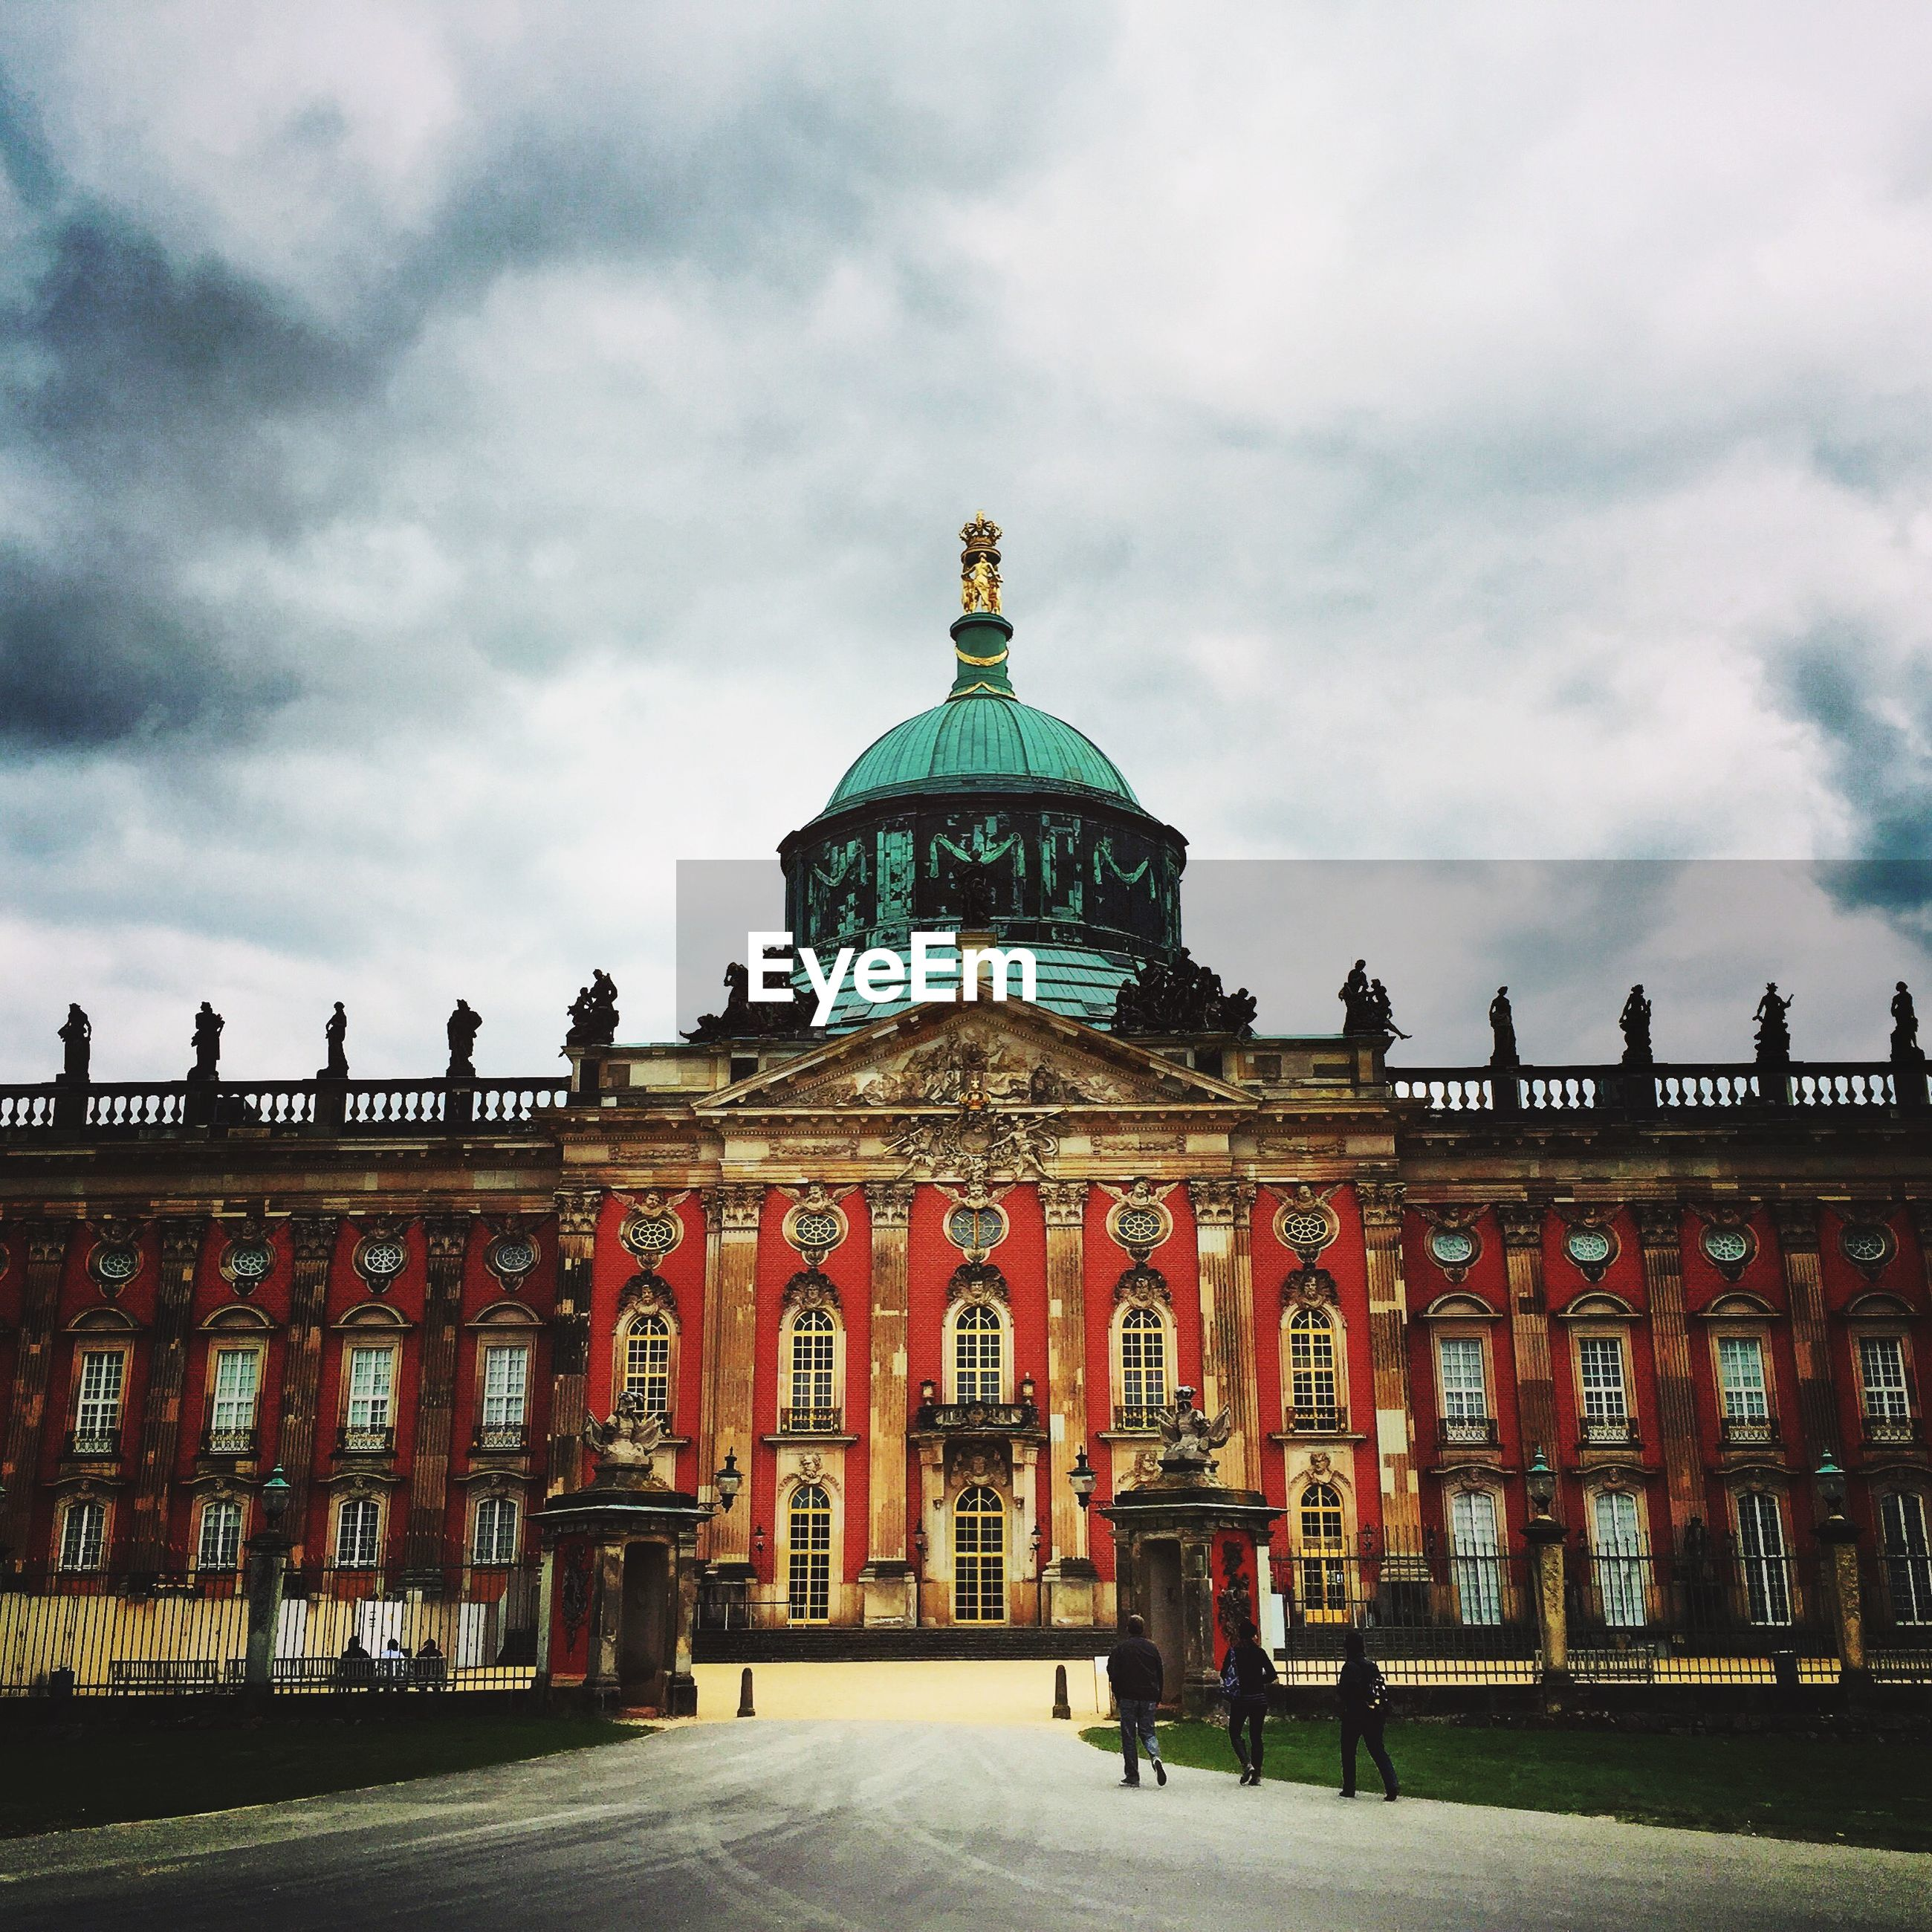 View of new palace potsdam against cloudy sky